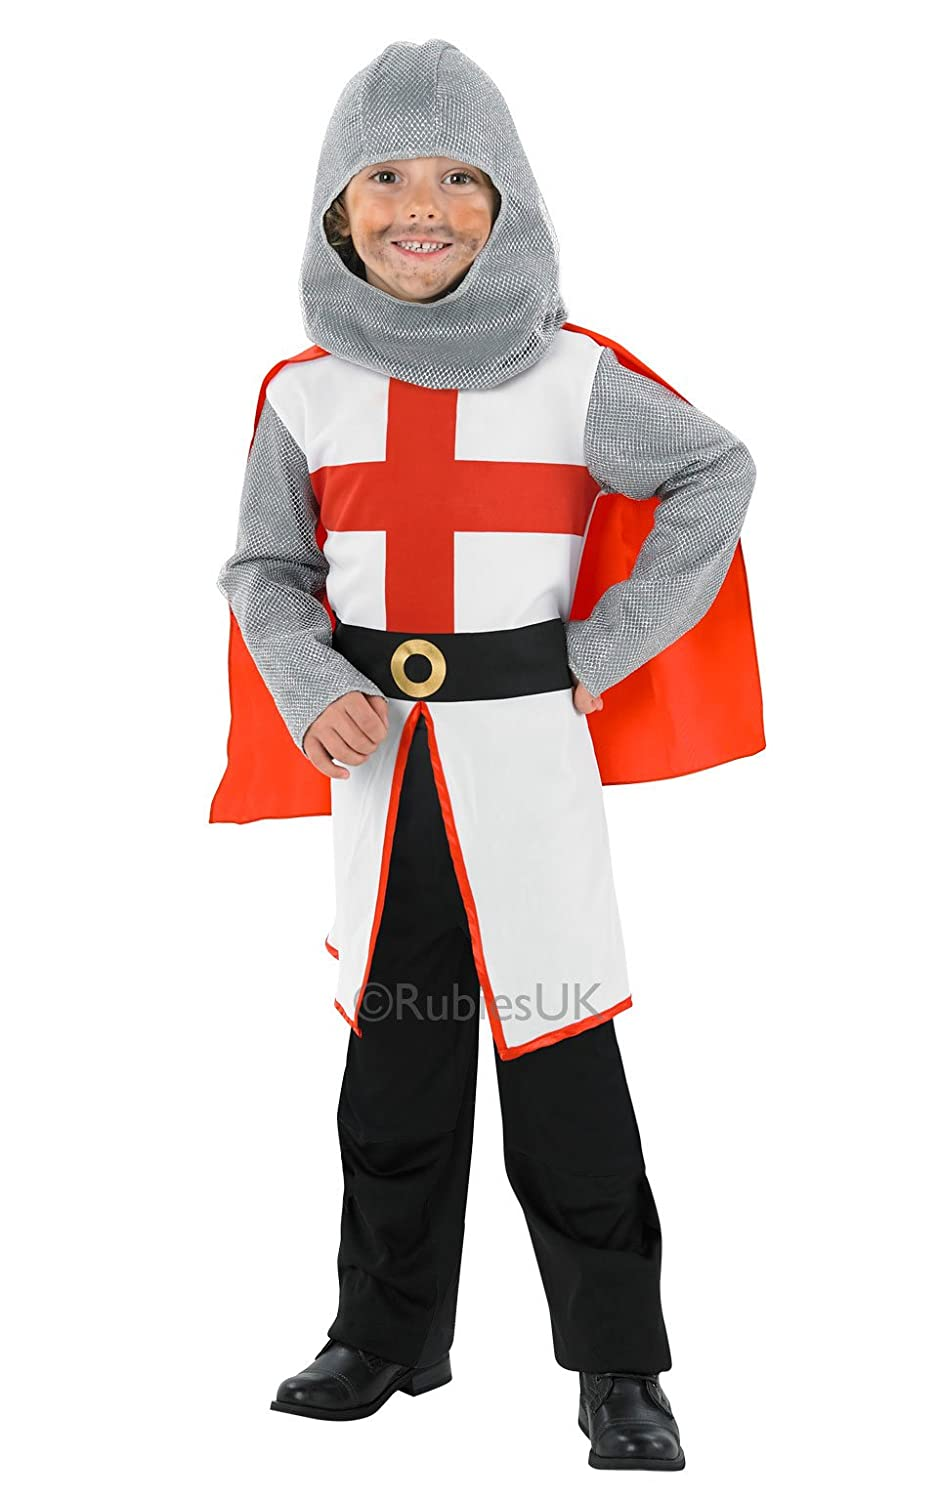 Childrens St George Knight Fancy Dress Costume King Outfit 7-8 Yrs Amazon.co.uk Clothing  sc 1 st  Amazon UK & Childrens St George Knight Fancy Dress Costume King Outfit 7-8 Yrs ...